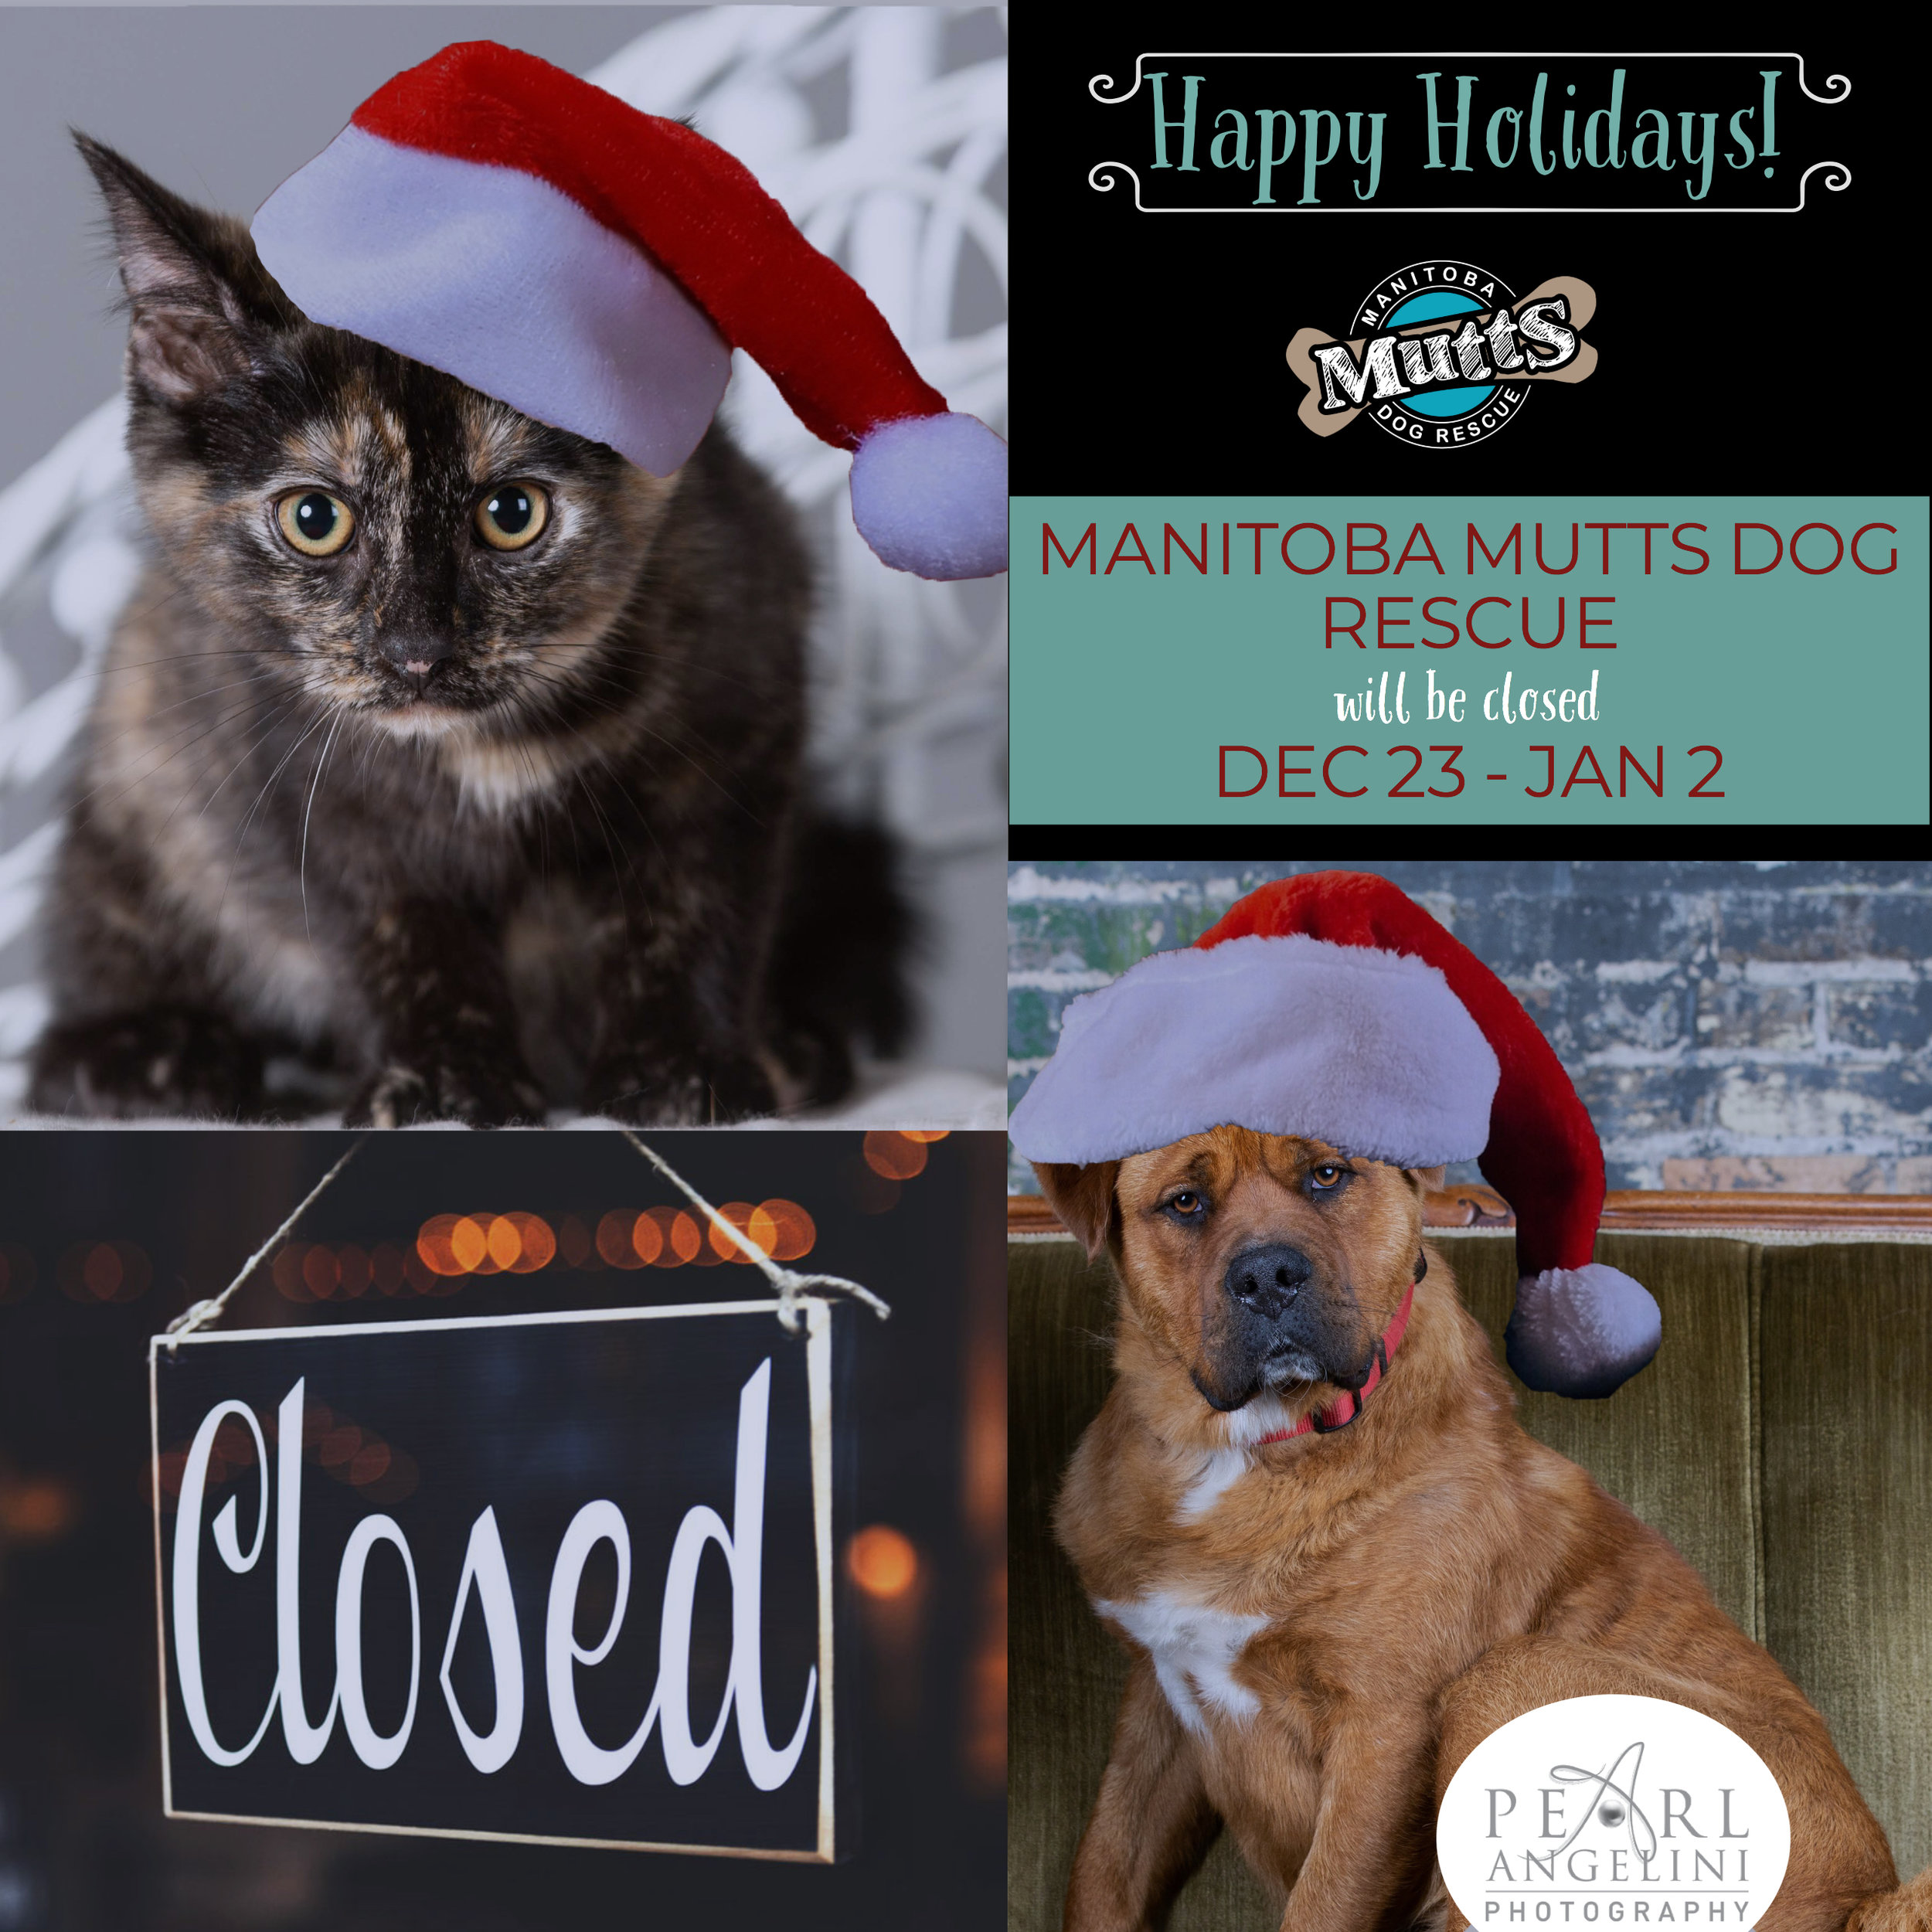 MB Mutts holiday closure post.jpg